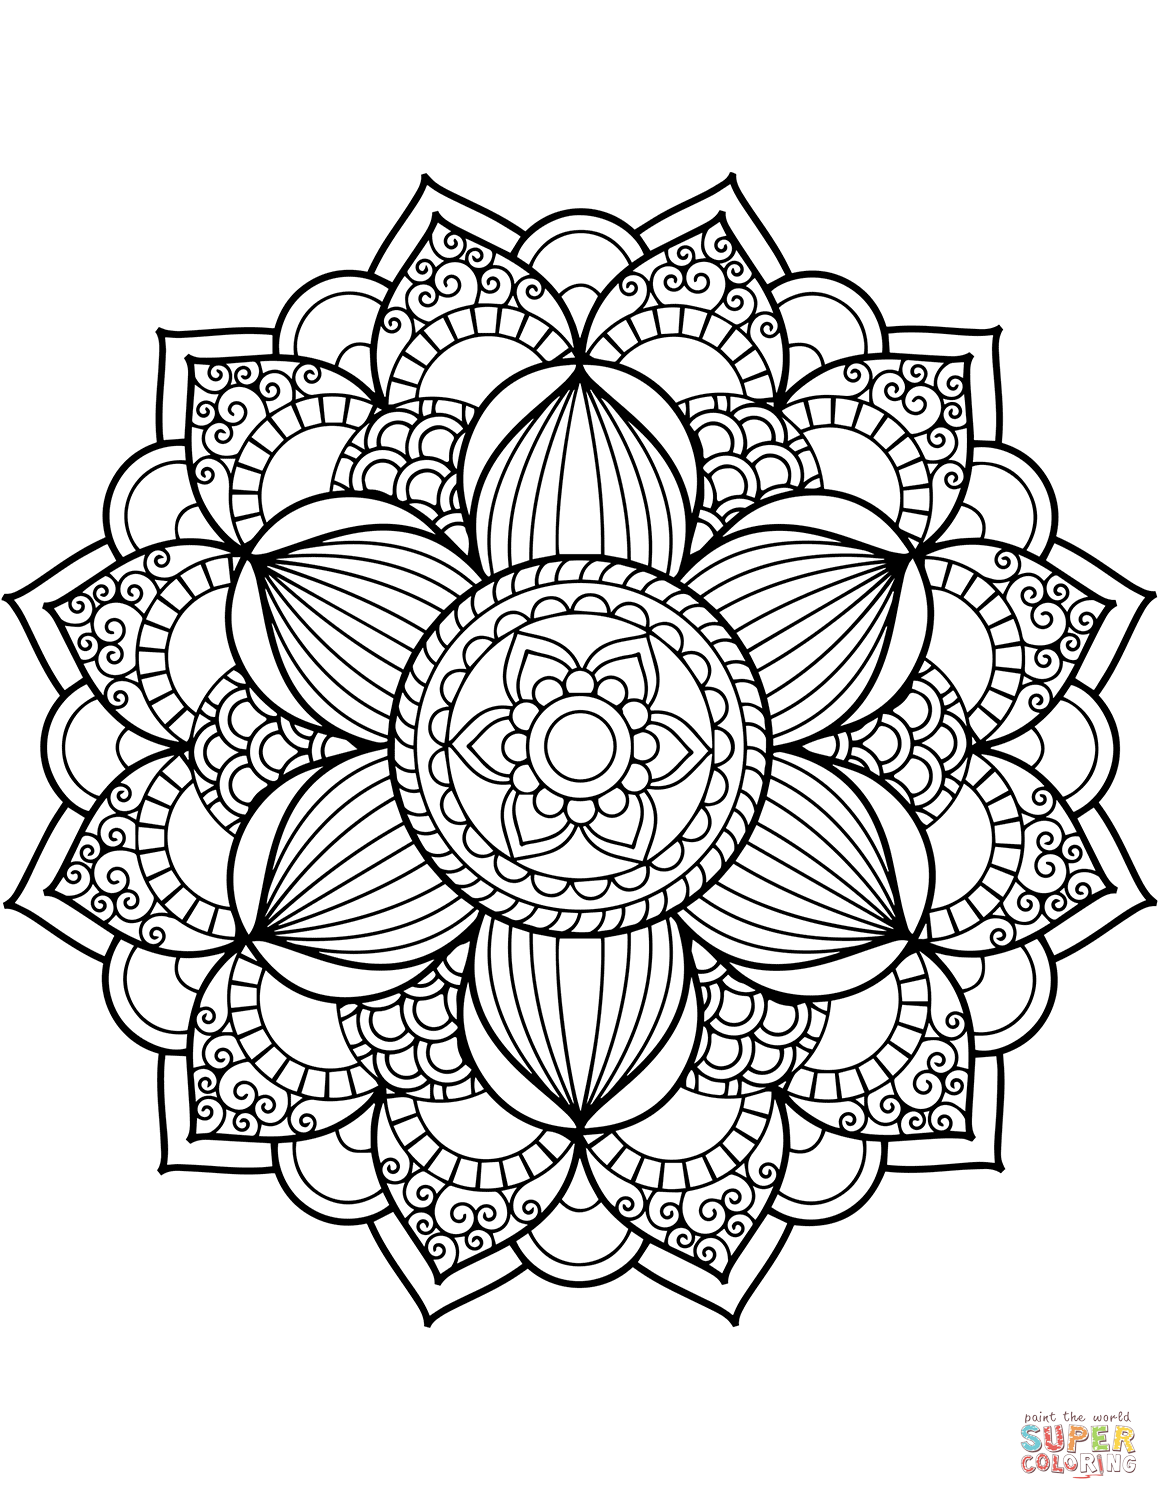 free printable mandala coloring pages adults download the full size mandala on the right to print and coloring free mandala adults pages printable